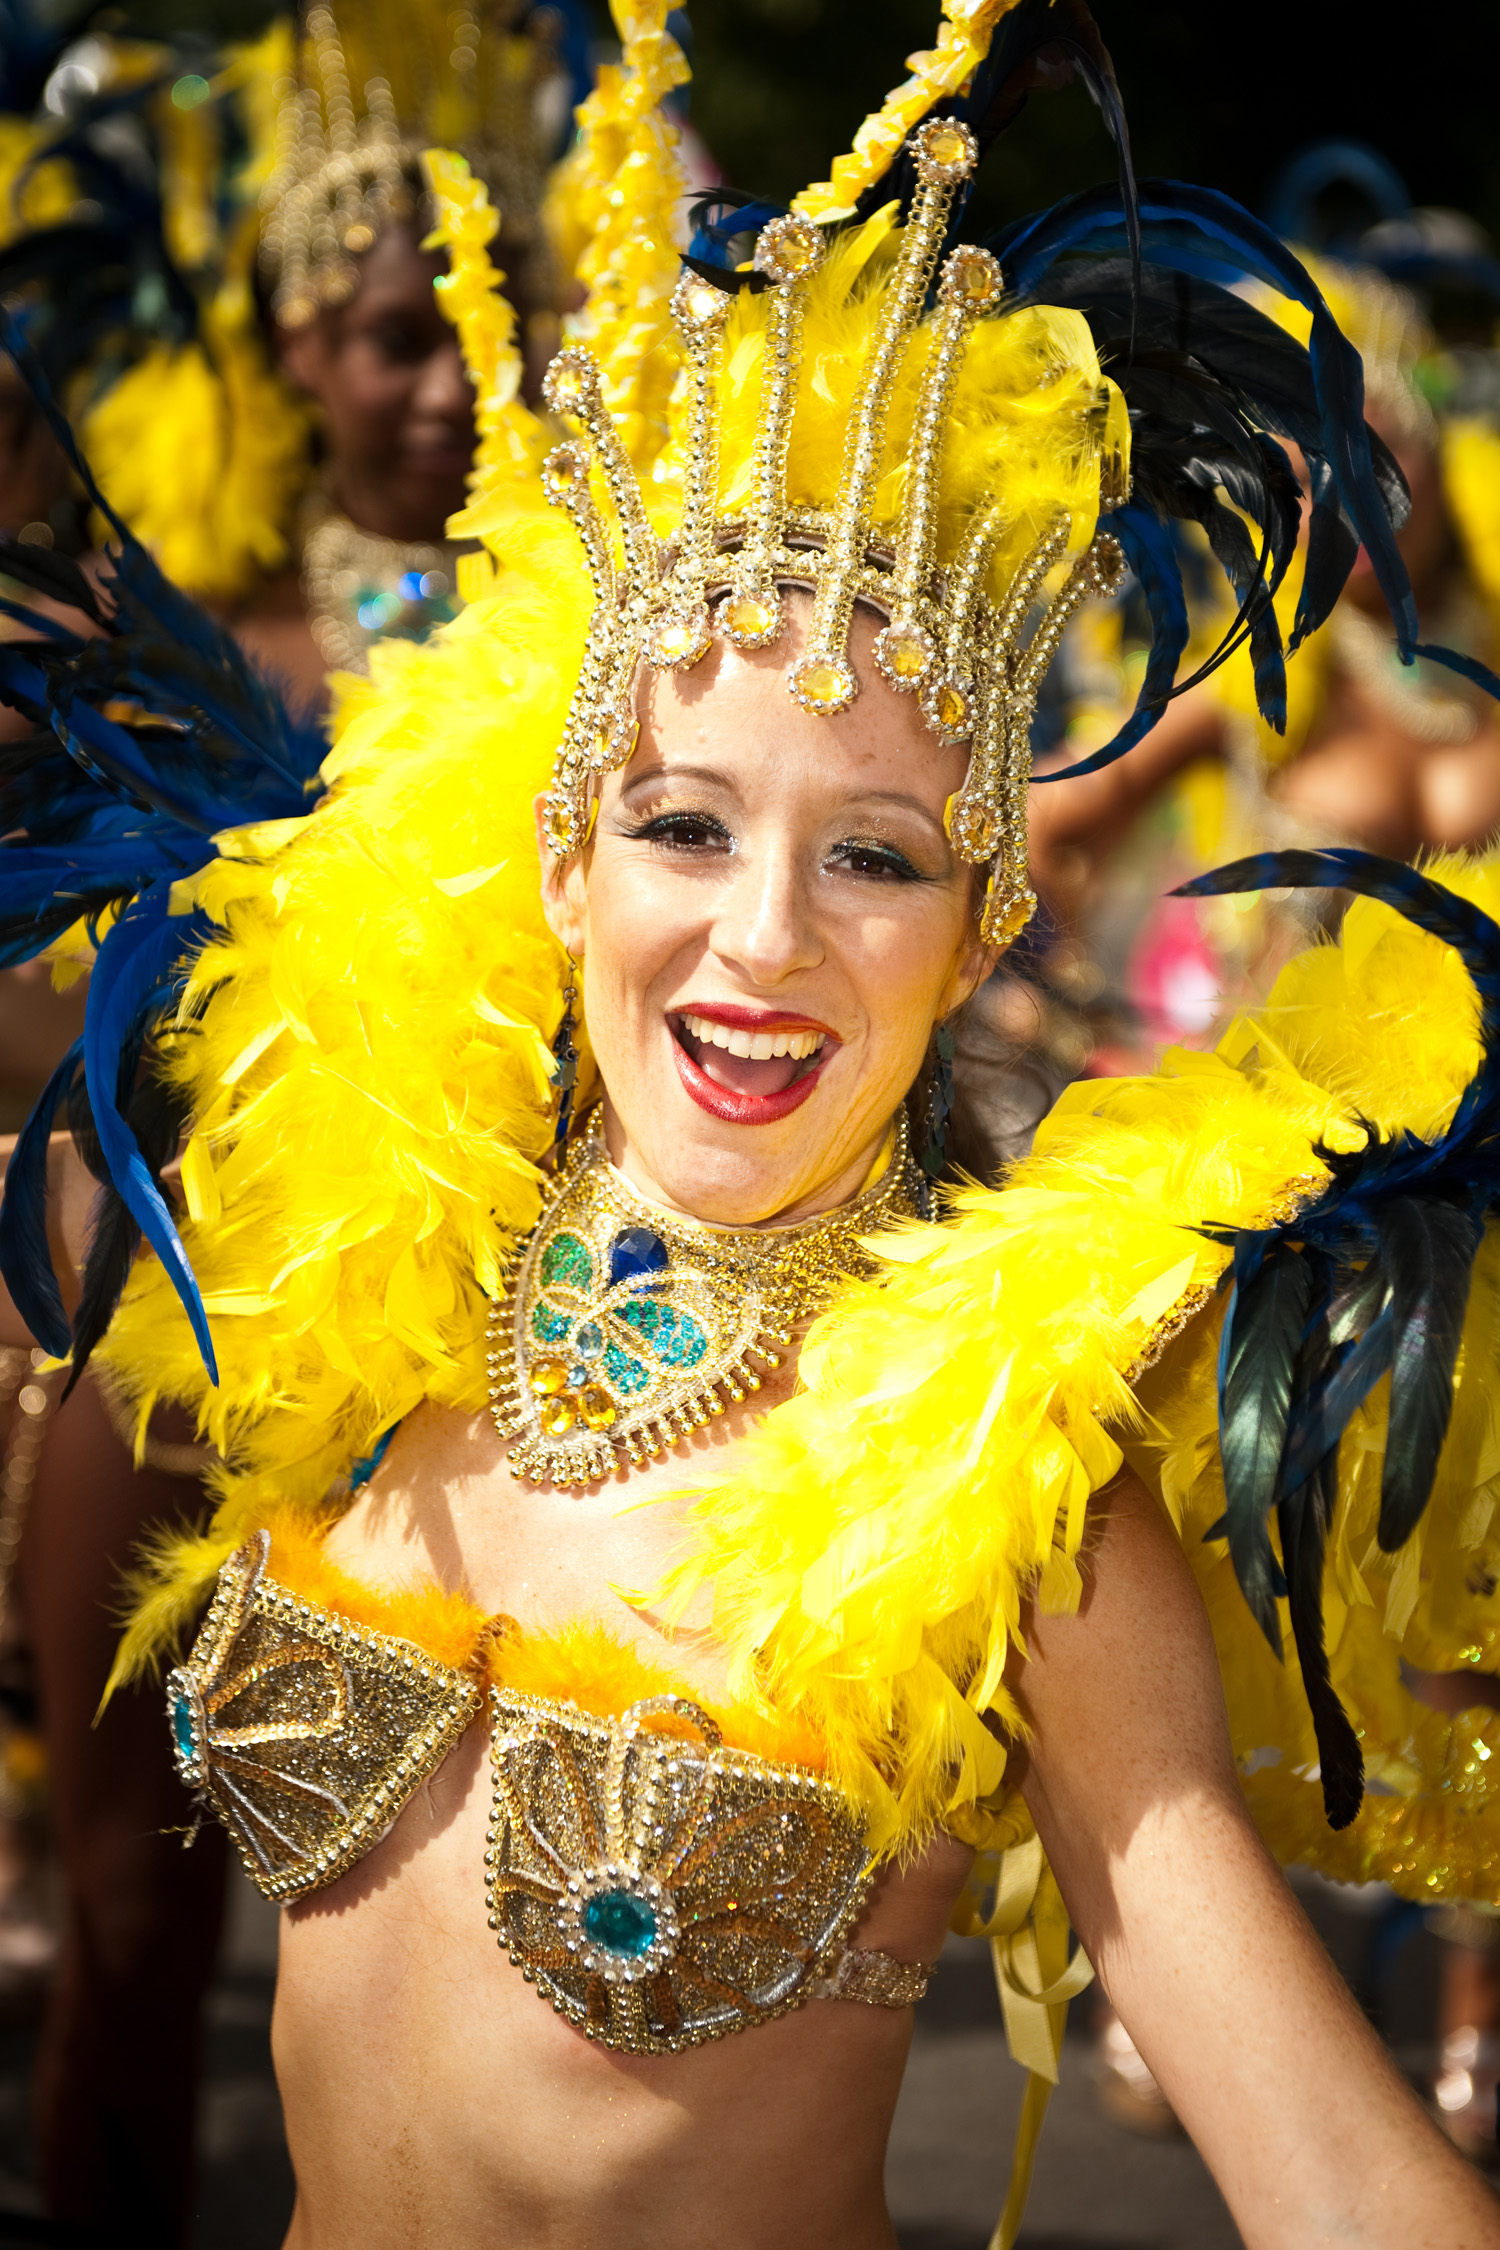 Carnival_the_rest_11